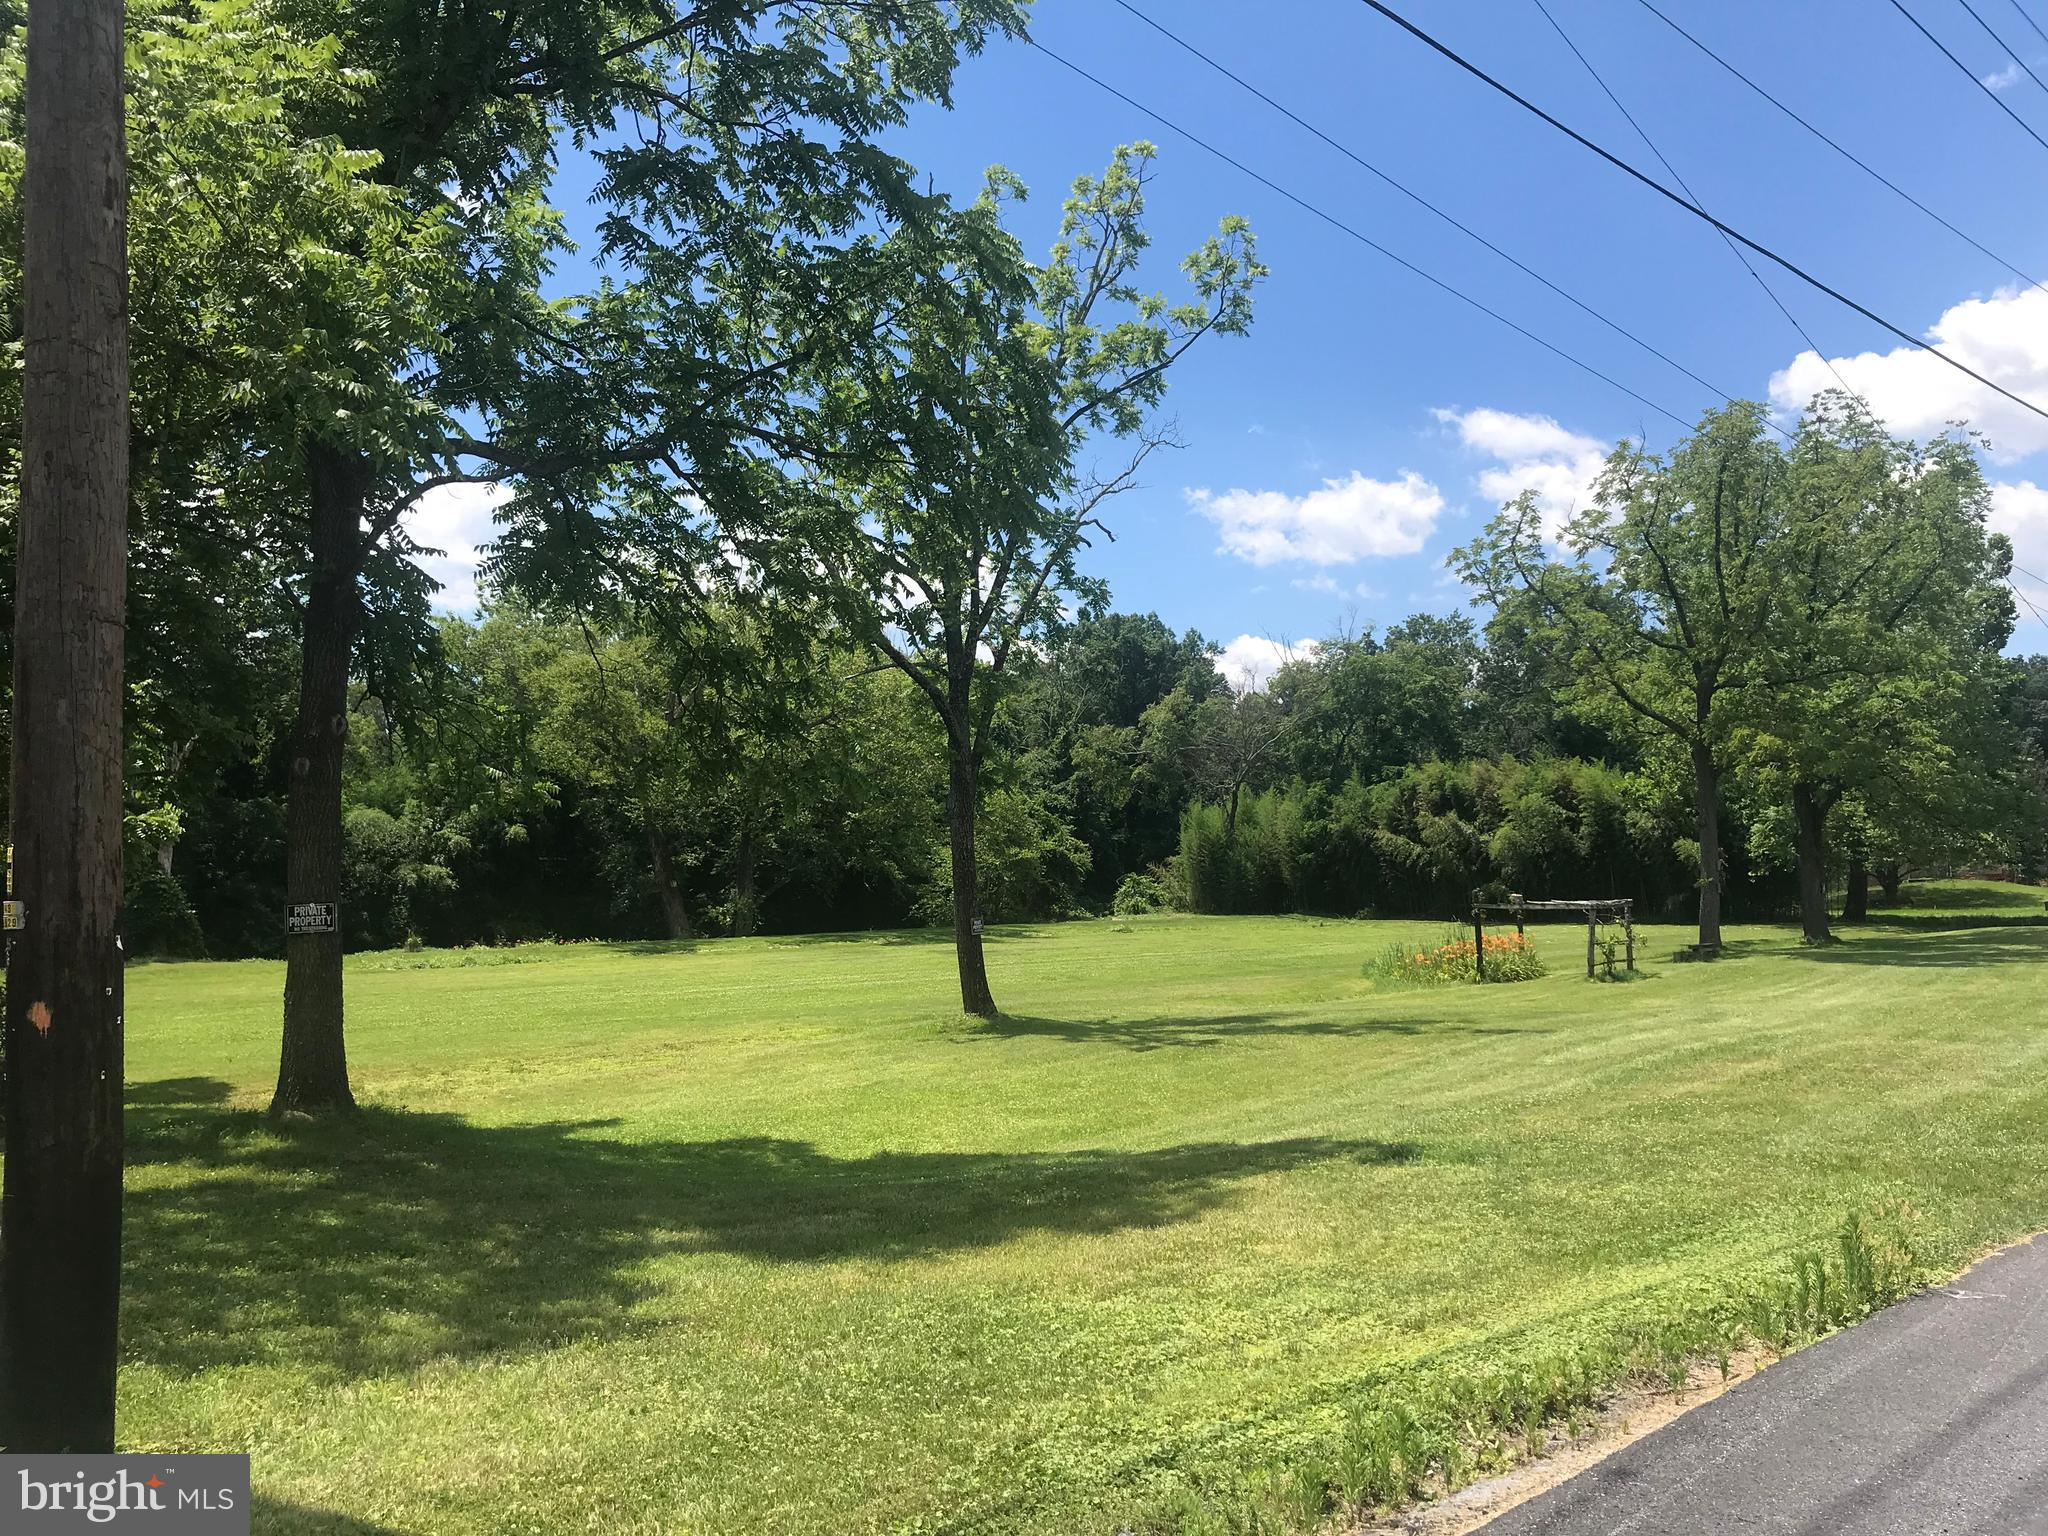 Lot ROUTE 225, DAUPHIN, PA 17018